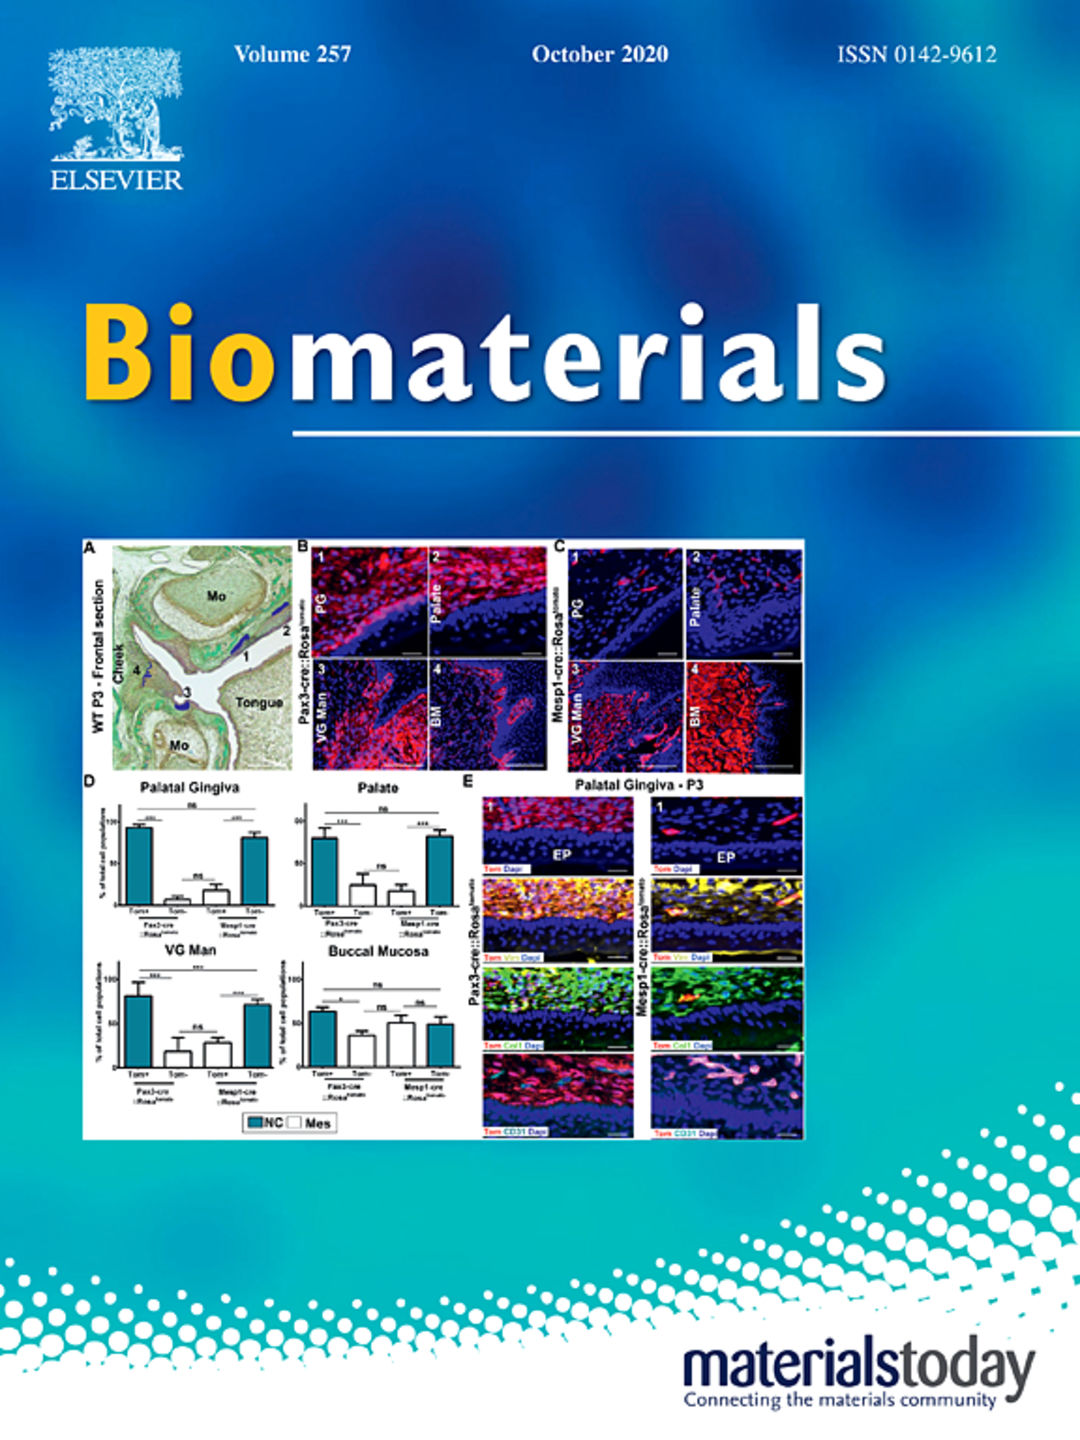 Biomaterials, Vol. 257, October 2020. Copyright: Elsevier